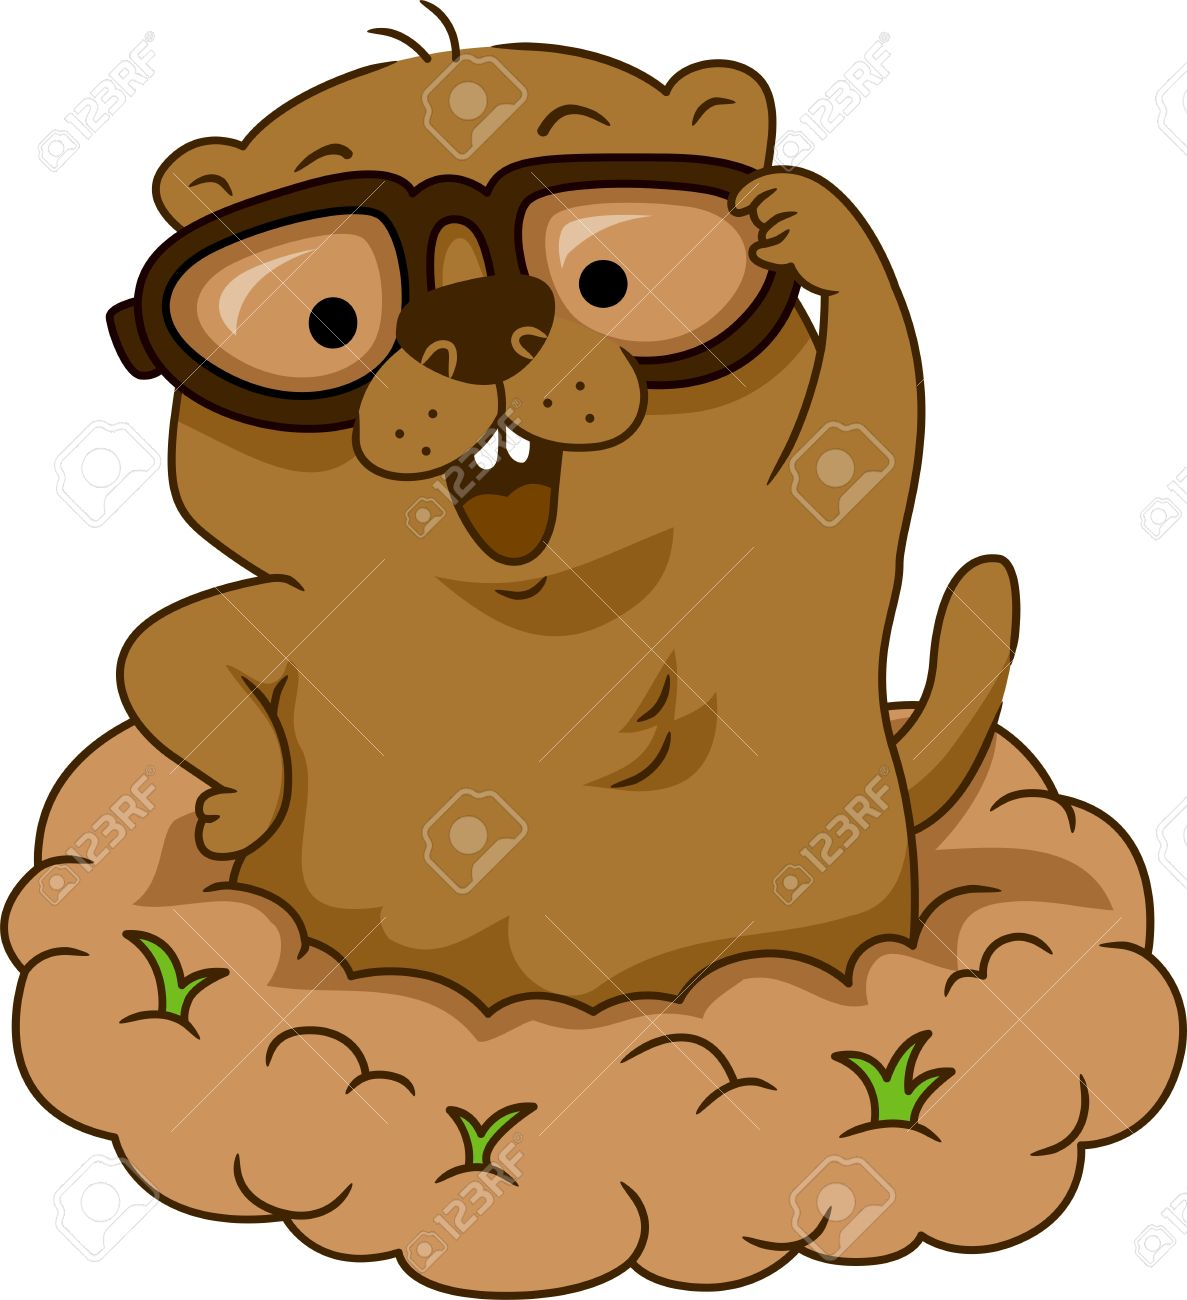 Woodchuck Clipart | Clipart Panda - Free Clipart Images